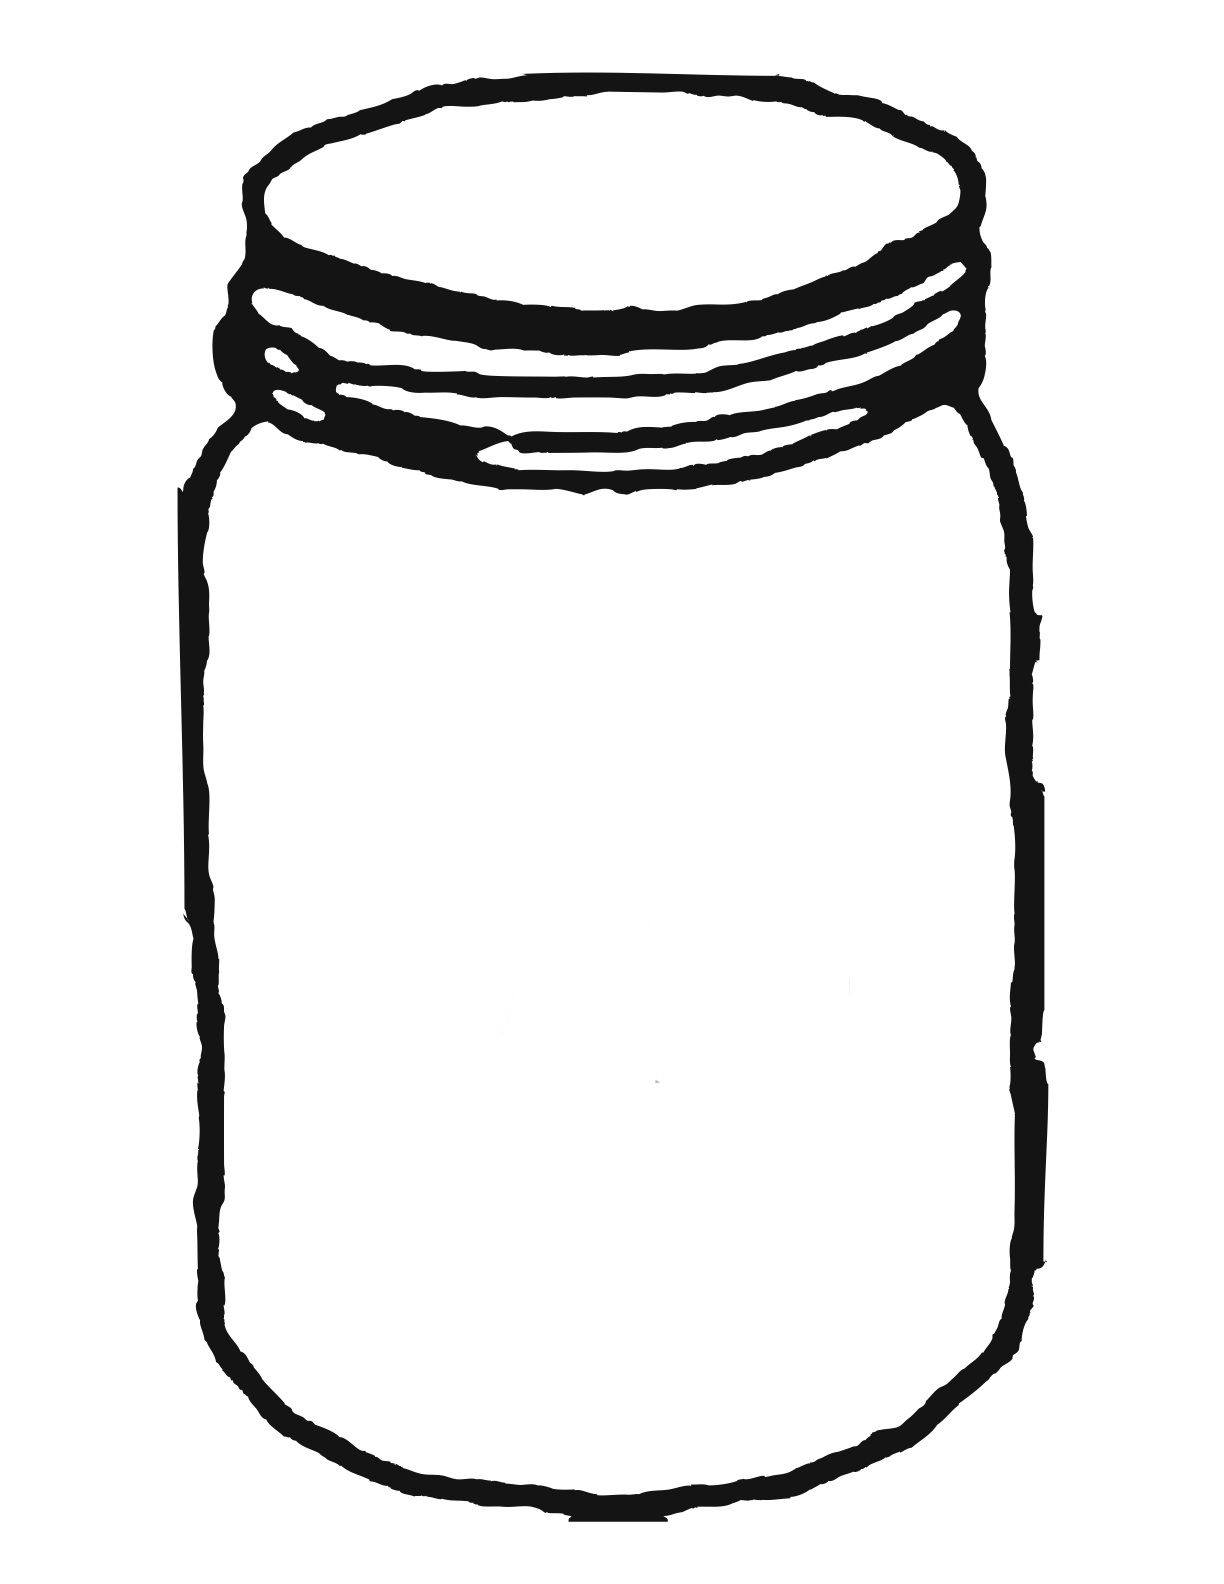 Ccokies in a jar clipart black and white graphic library Template for mason jar clipart clipartwiz | Free printable | Mason ... graphic library